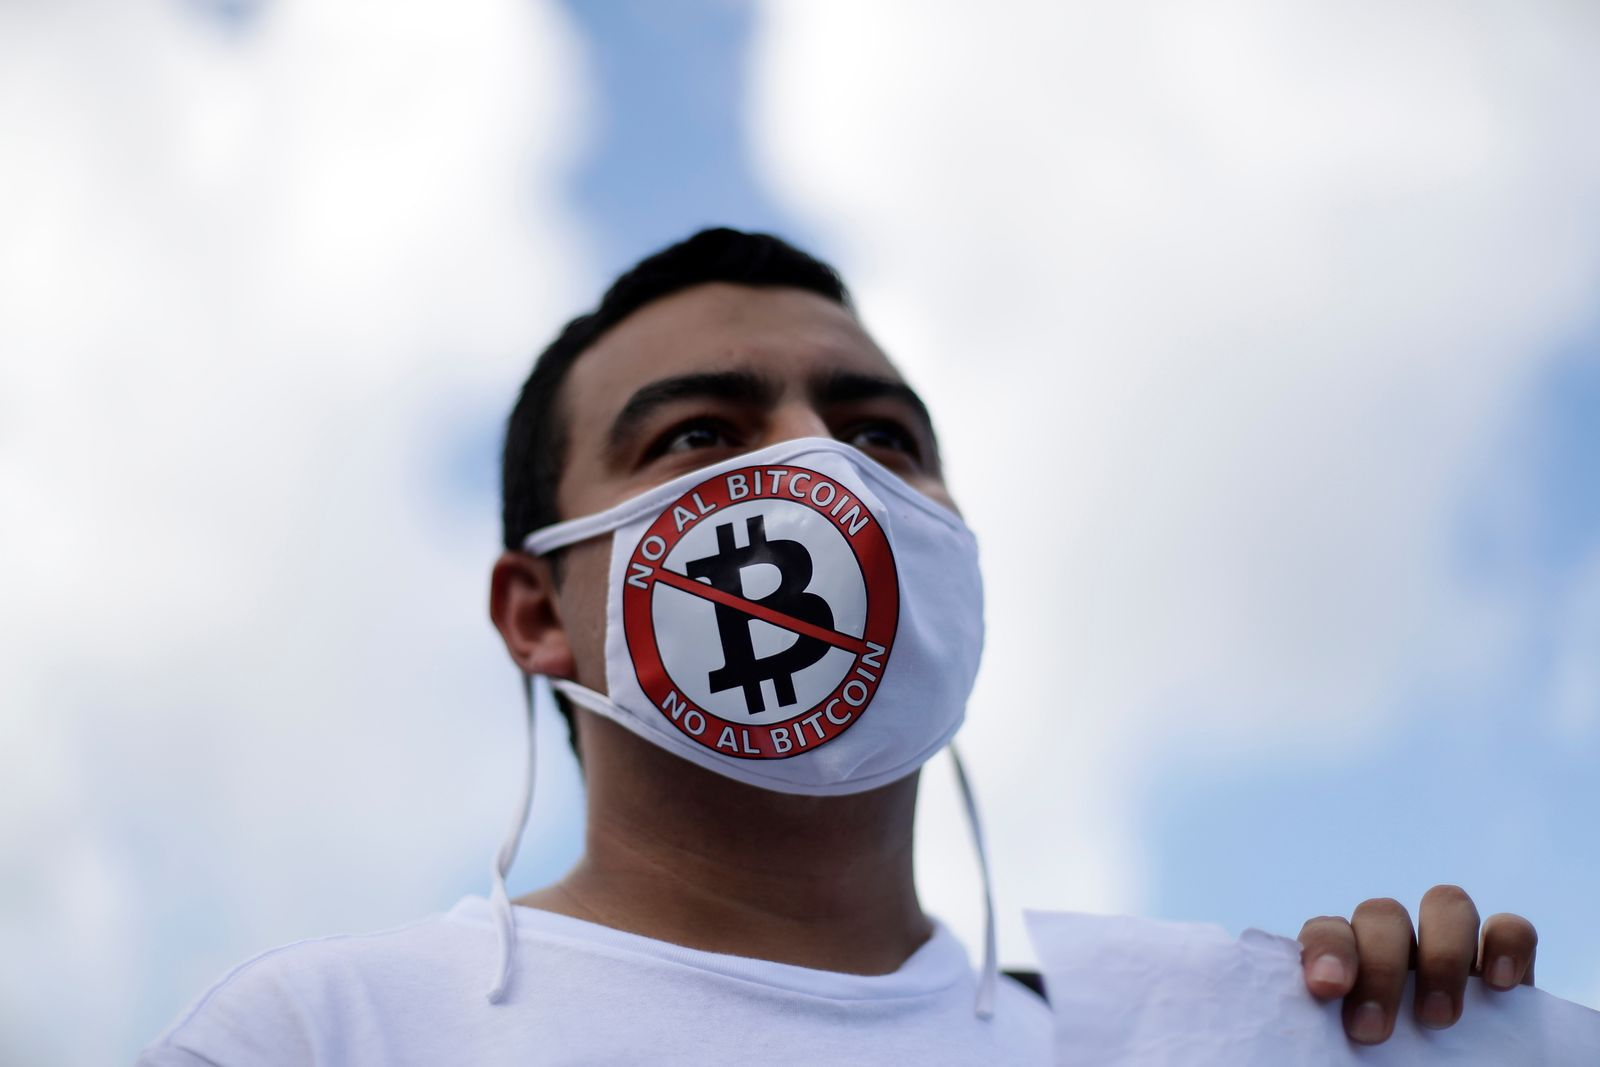 Rally against bitcoin and the reelection of President Nayib Bukele